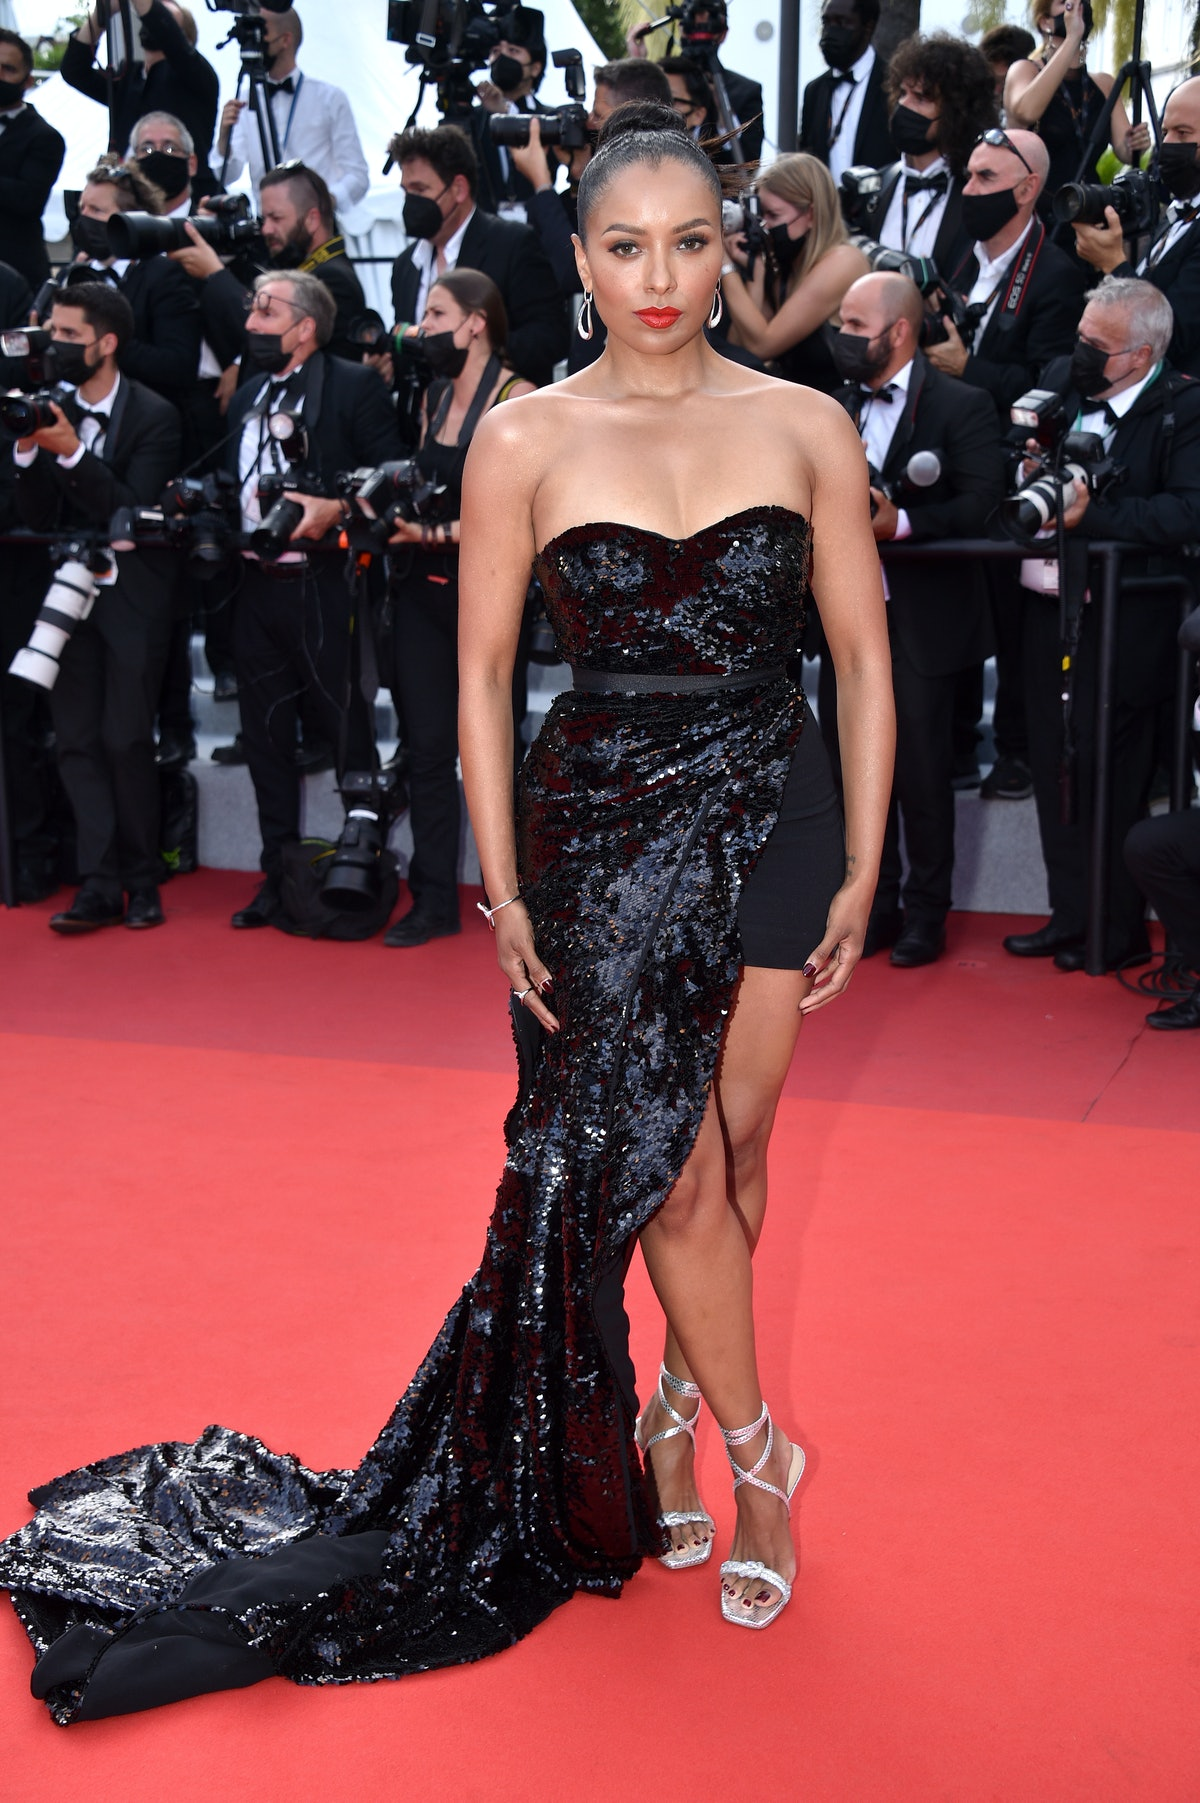 """CANNES, FRANCE - JULY 15: Kat Graham attends the """"France"""" screening during the 74th annual Cannes Film Festival on July 15, 2021 in Cannes, France. (Photo by Lionel Hahn/Getty Images)"""